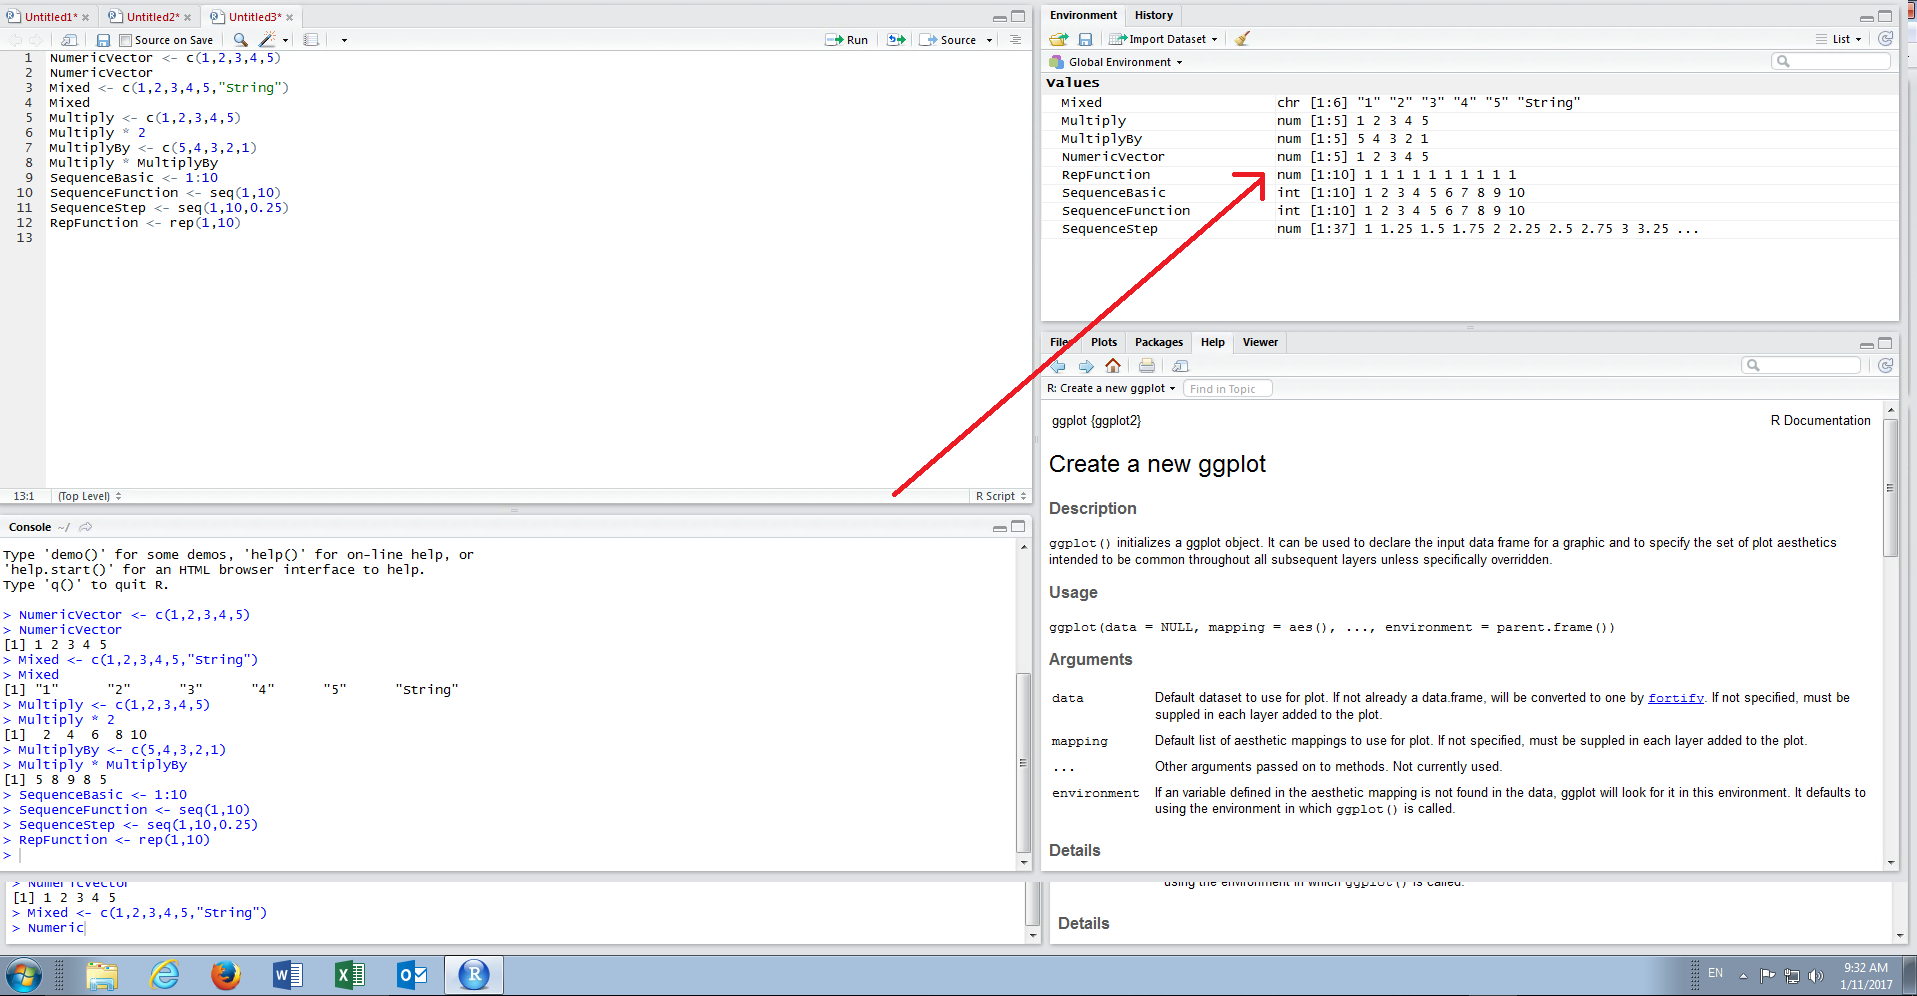 new-vector-created-by-rep-function-written-to-rstudio-environment.png